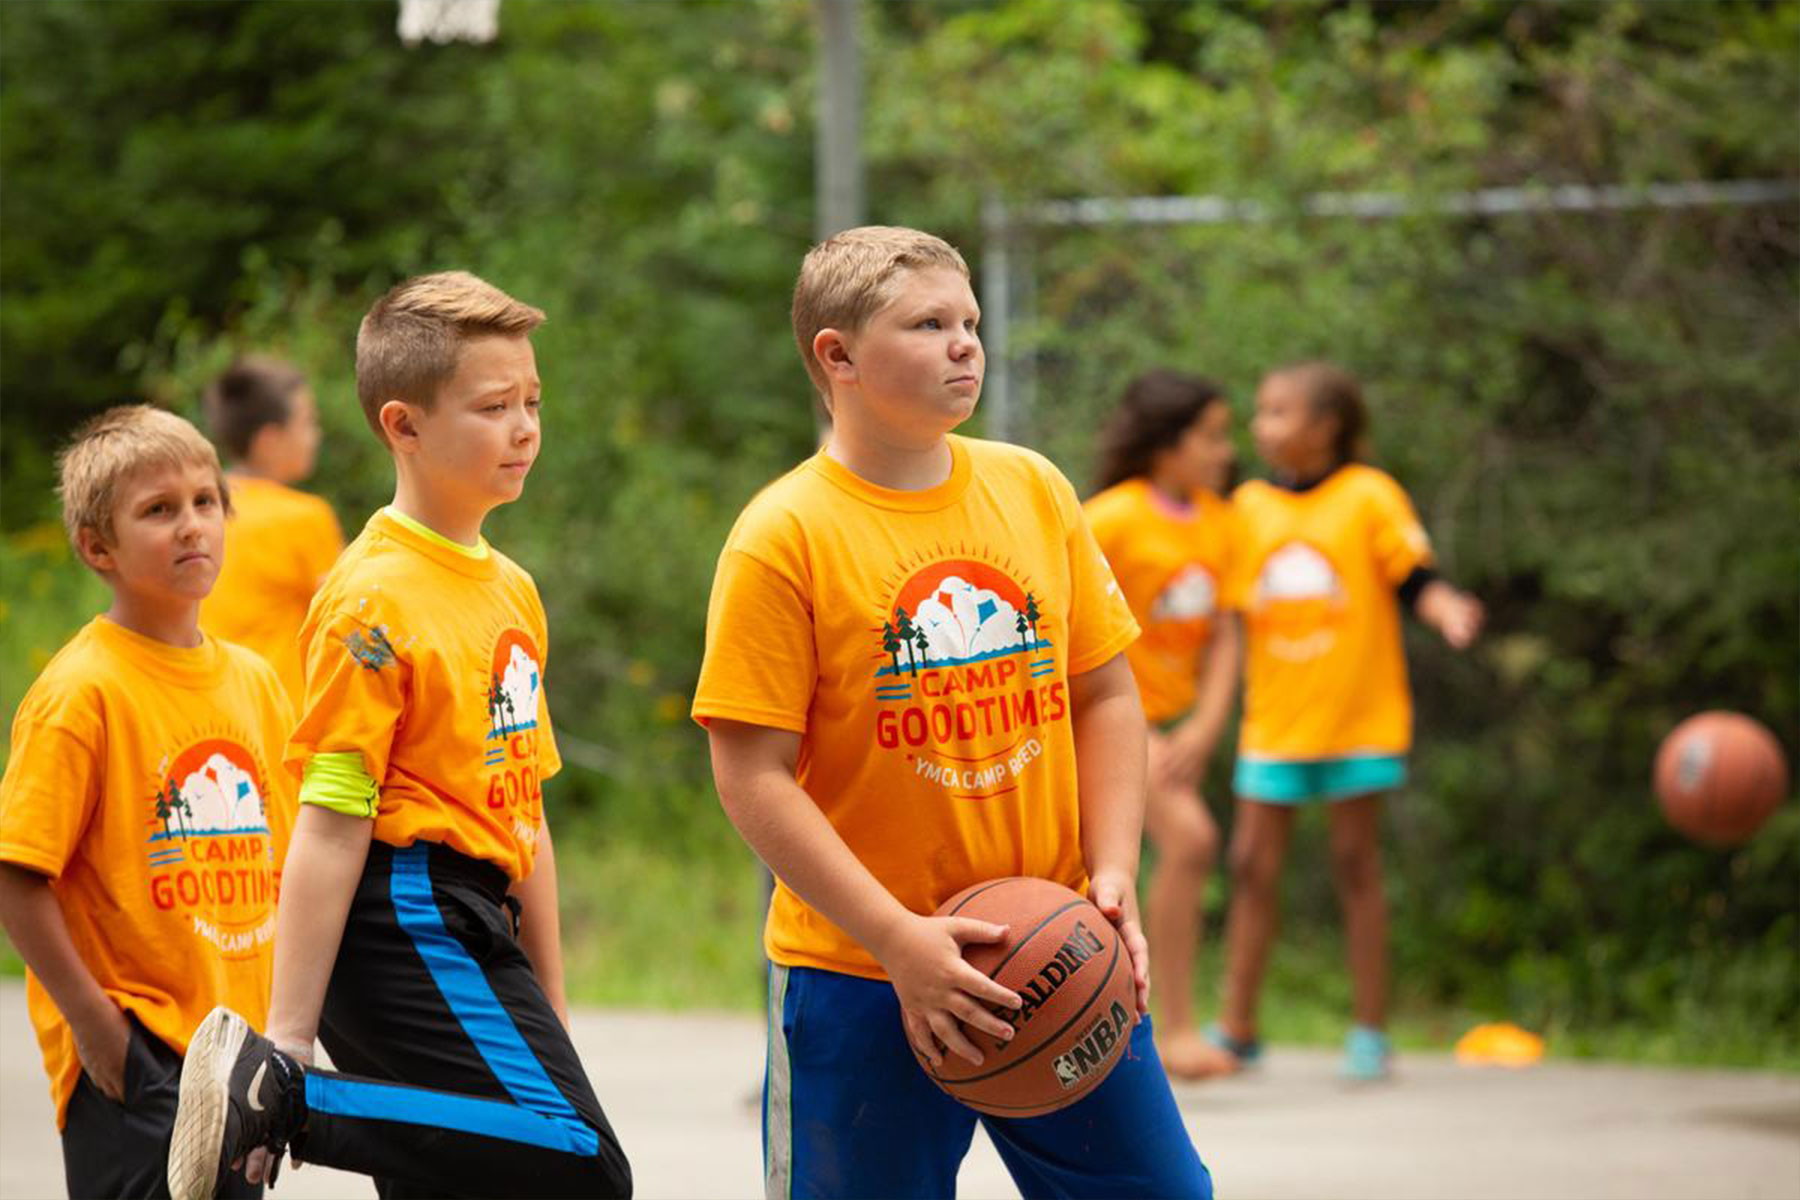 Community Cancer Fund Kickstarts Camp Goodtimes Endowment